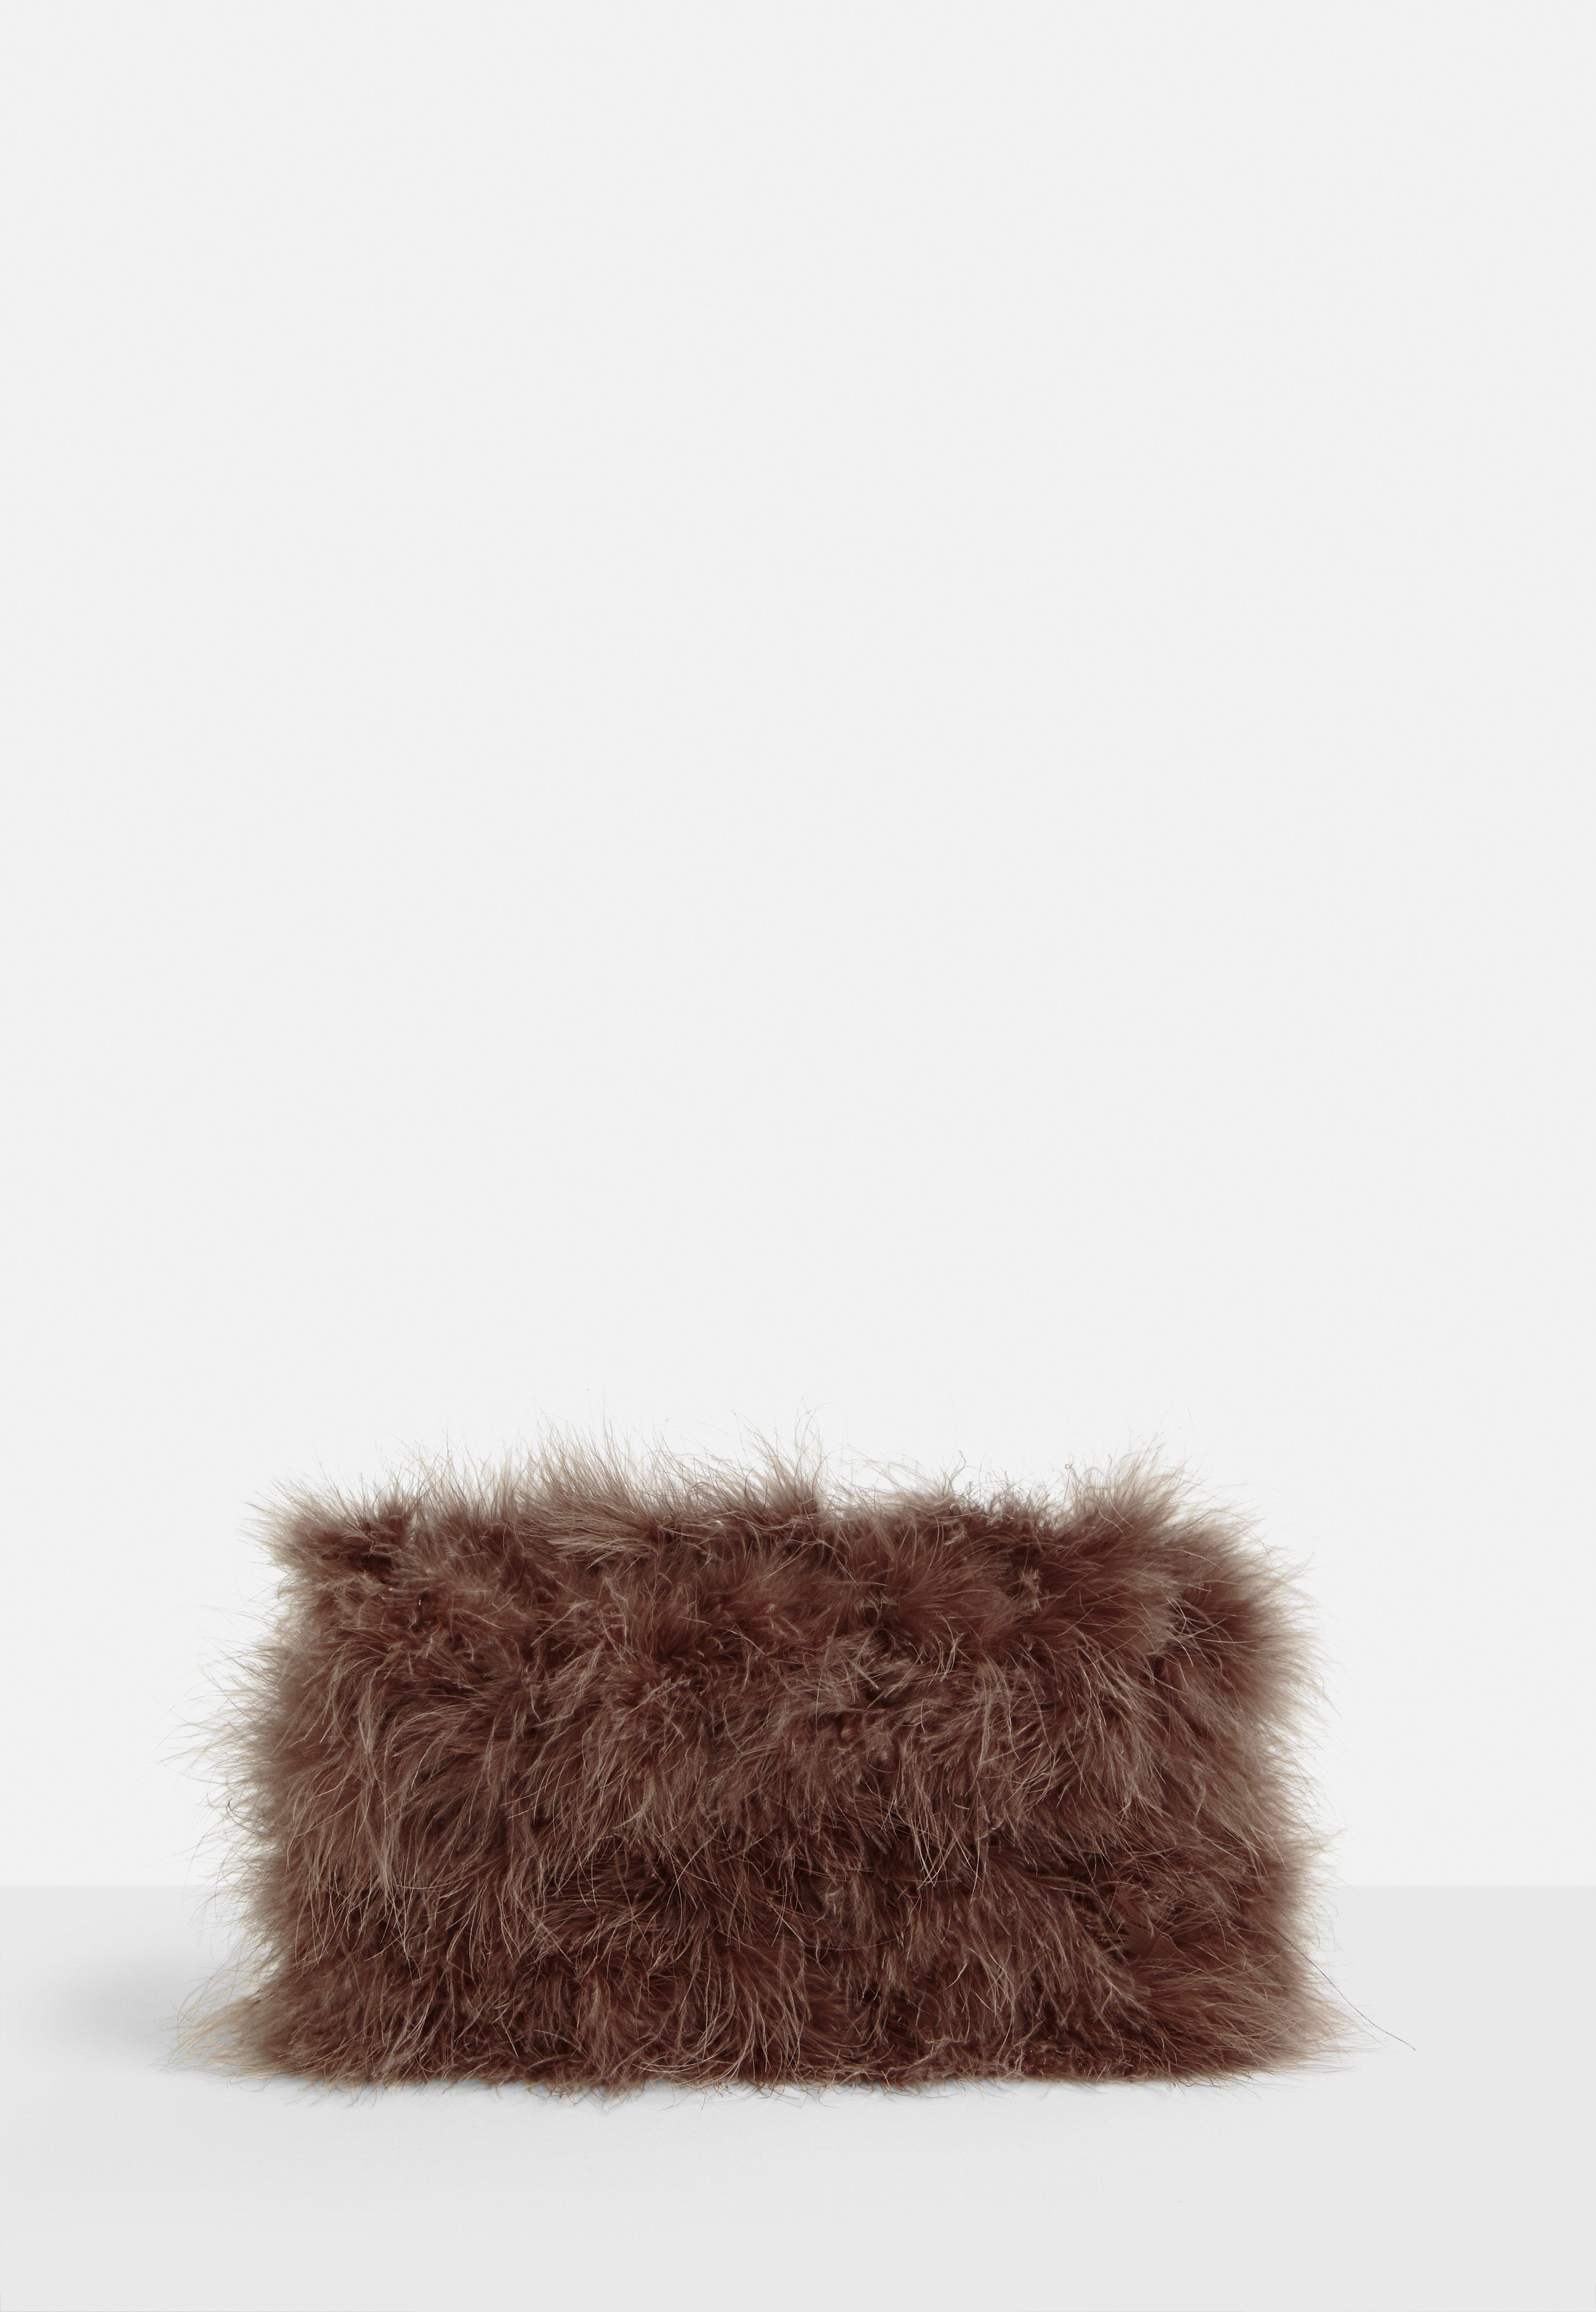 Lyst - Missguided Brown Fluffy Feather Clutch Bag in Brown ab87491d631a2